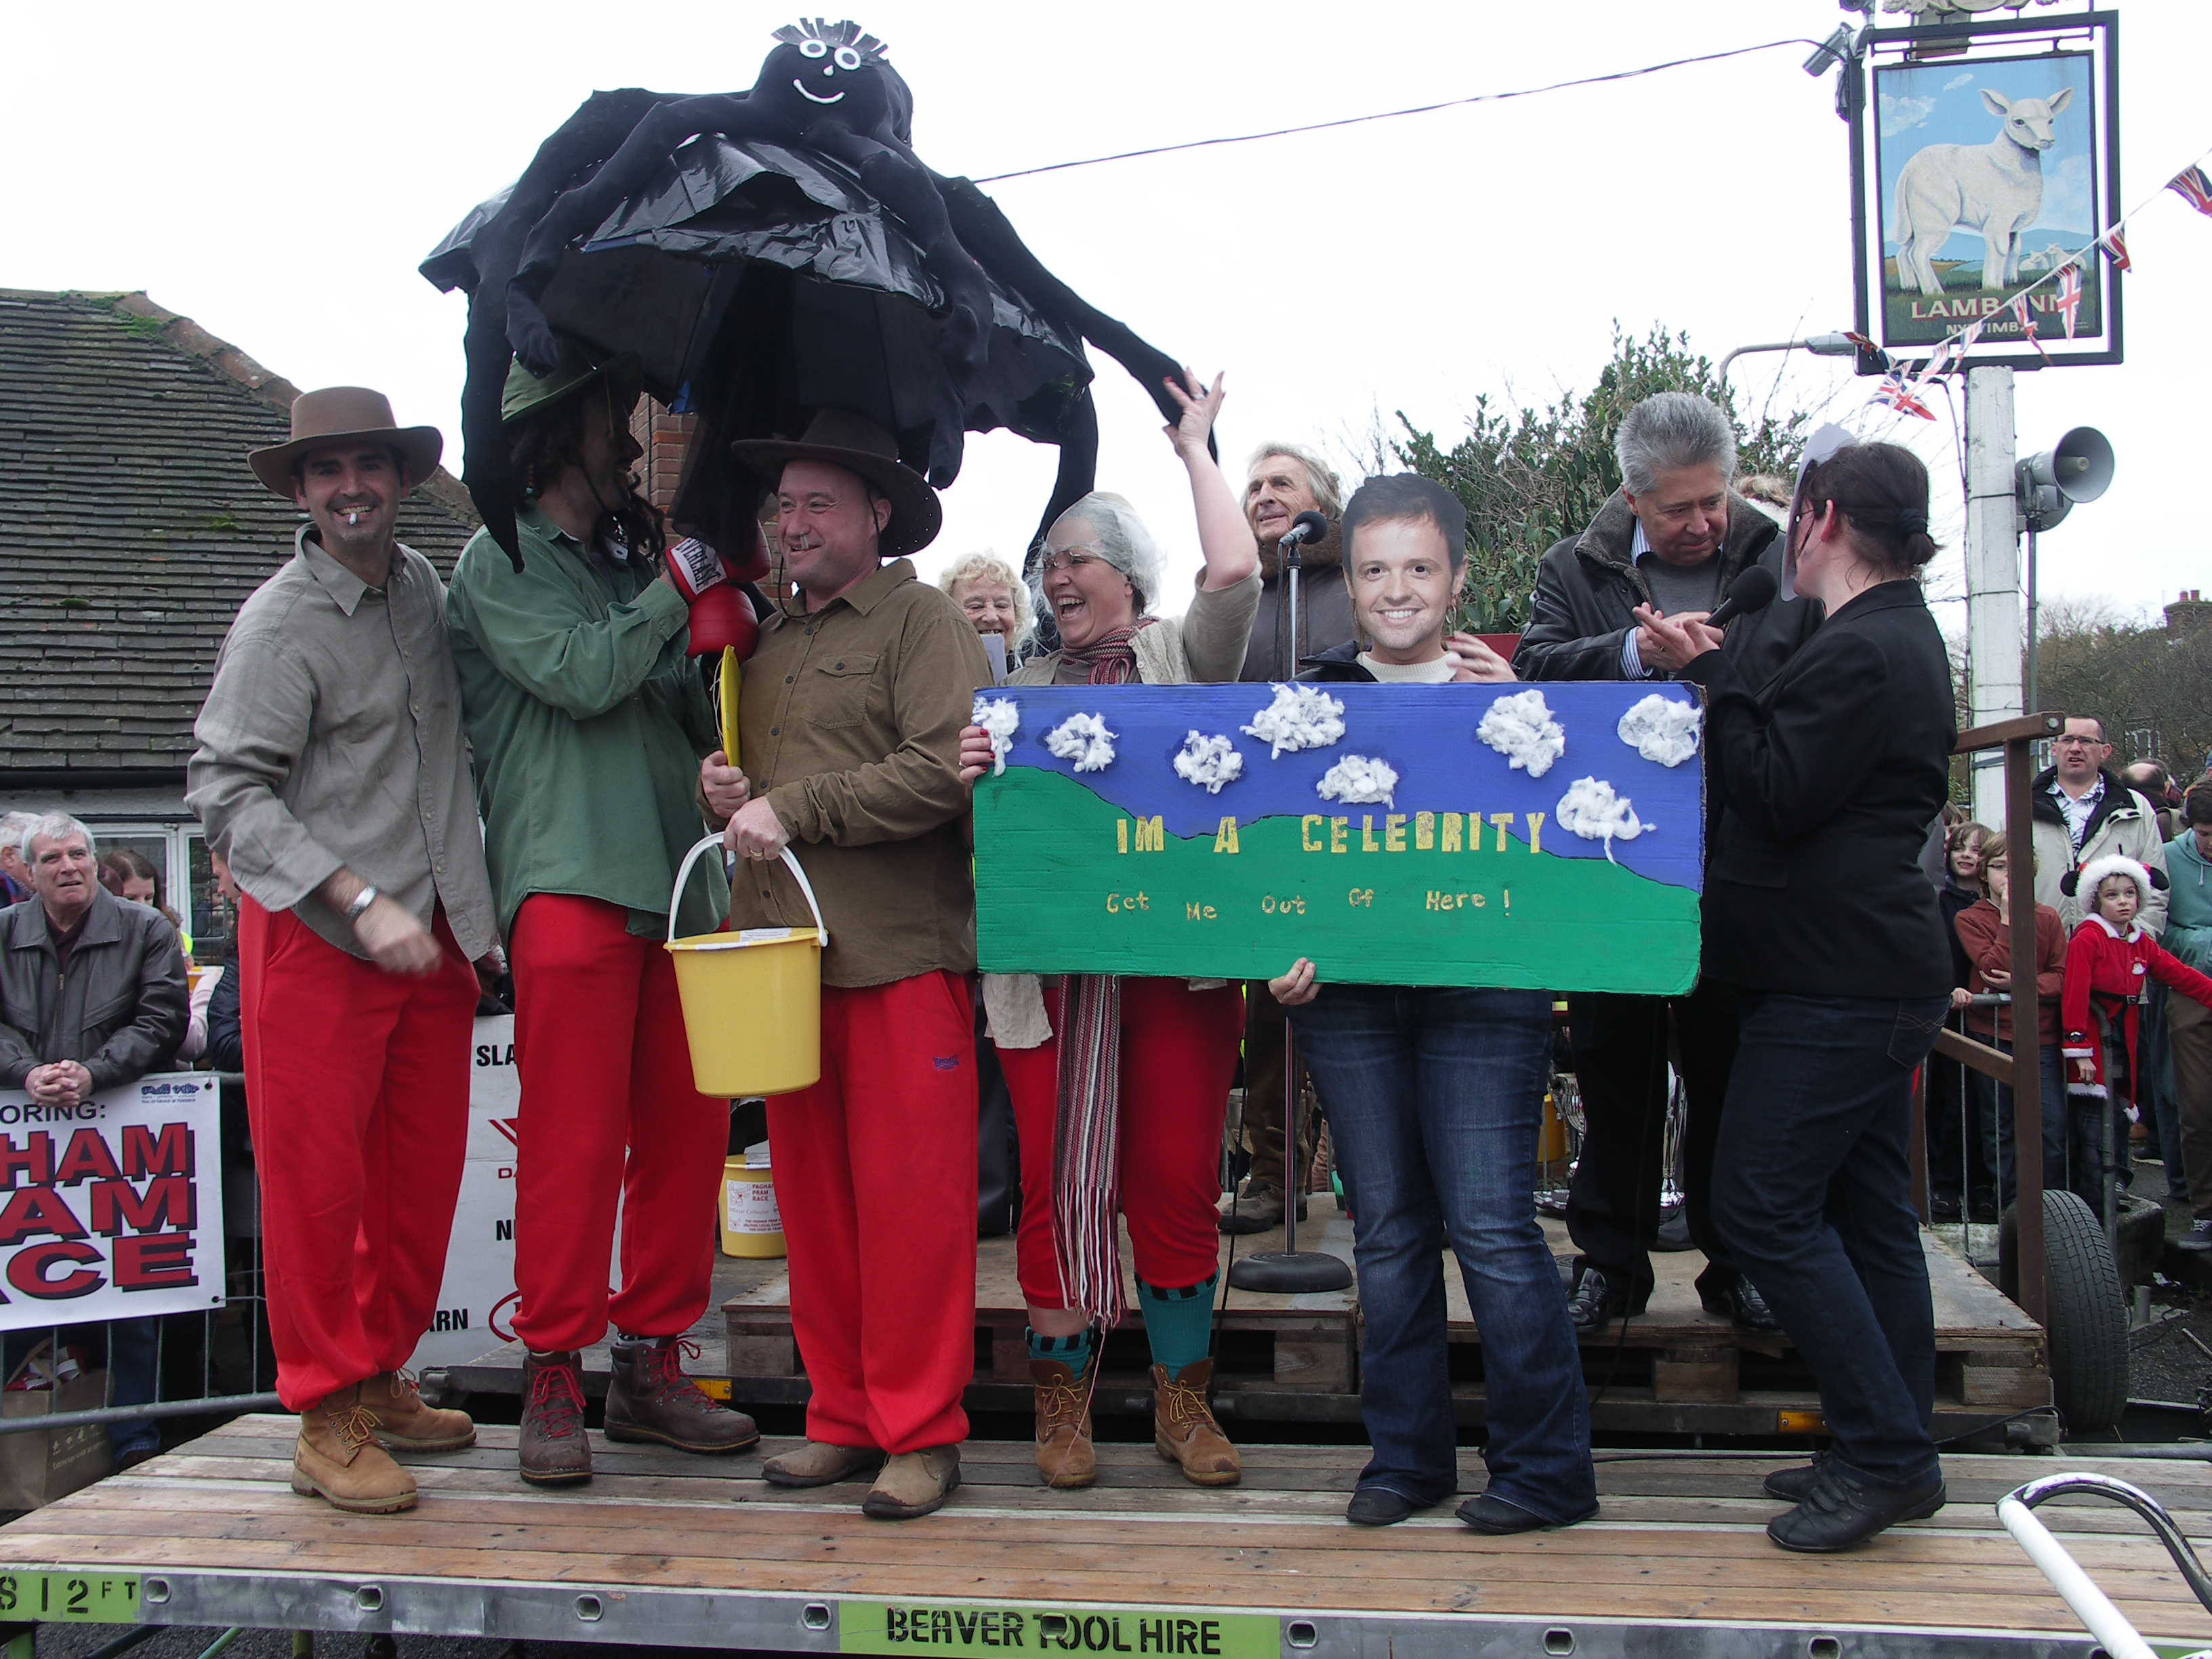 http://www.paghampramrace.com/wp-content/uploads/2018/04/PICT0092.jpg